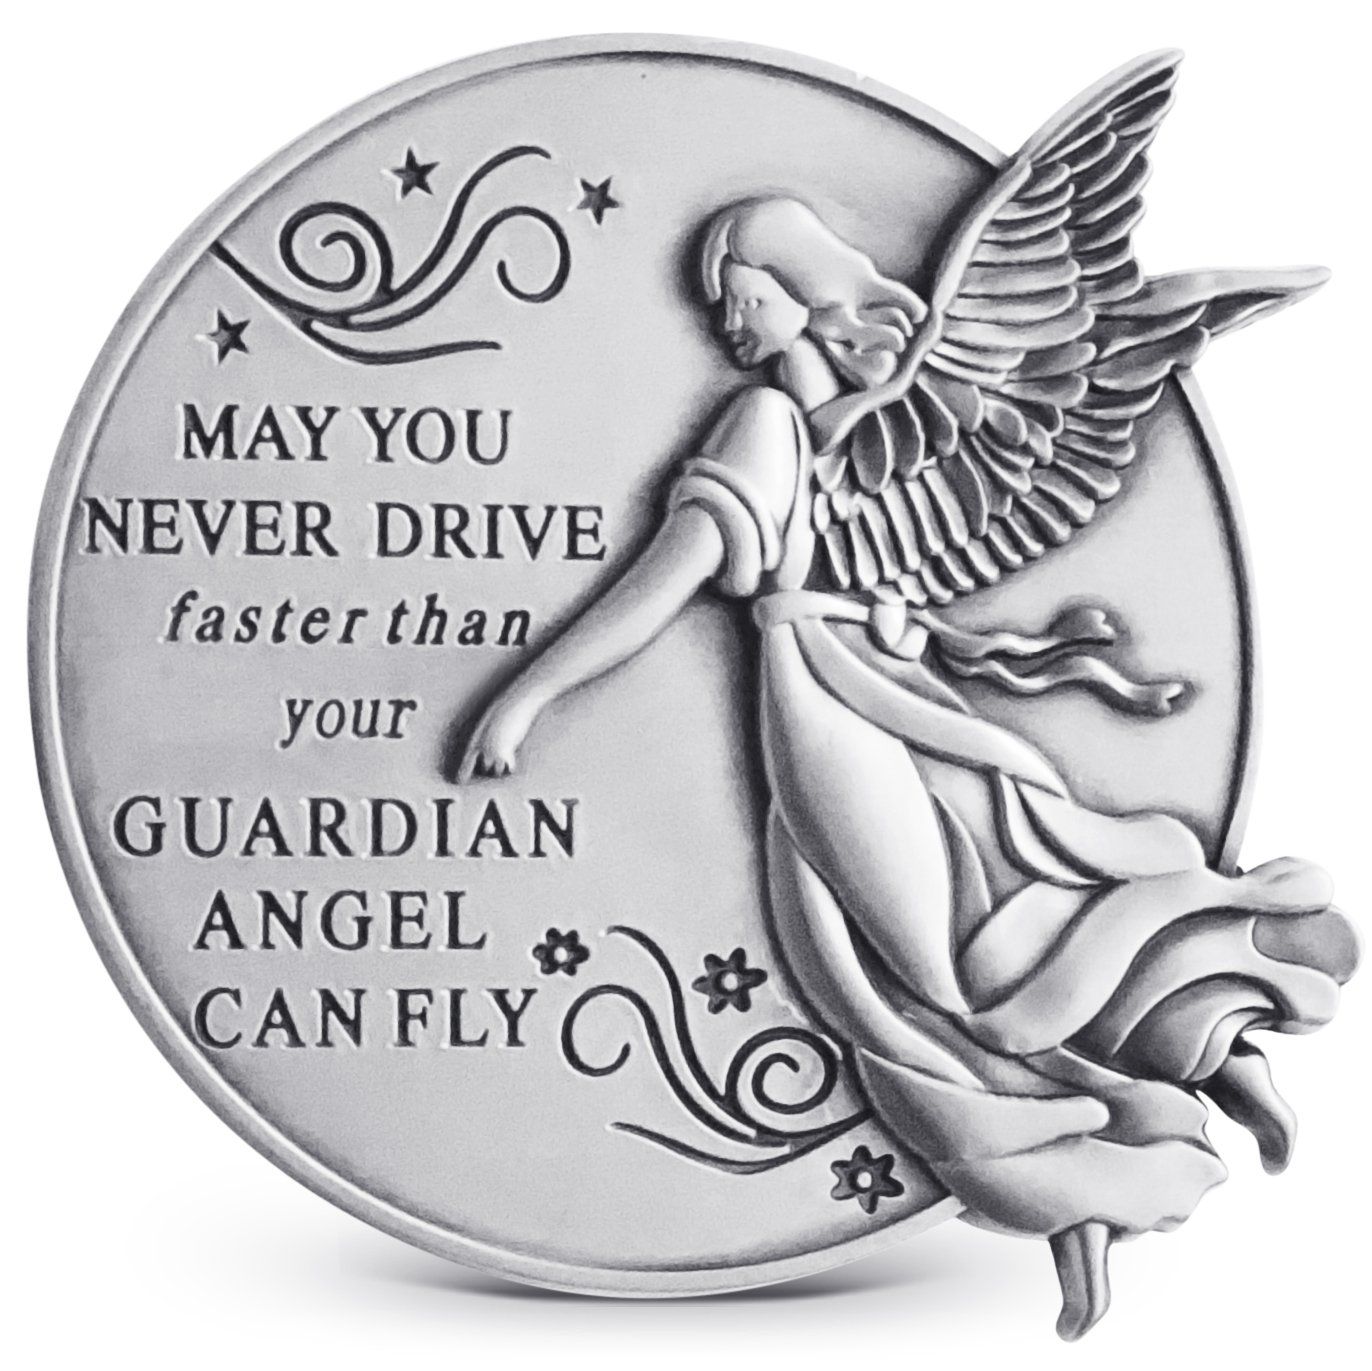 Guardian Angel Visor Clip For Car